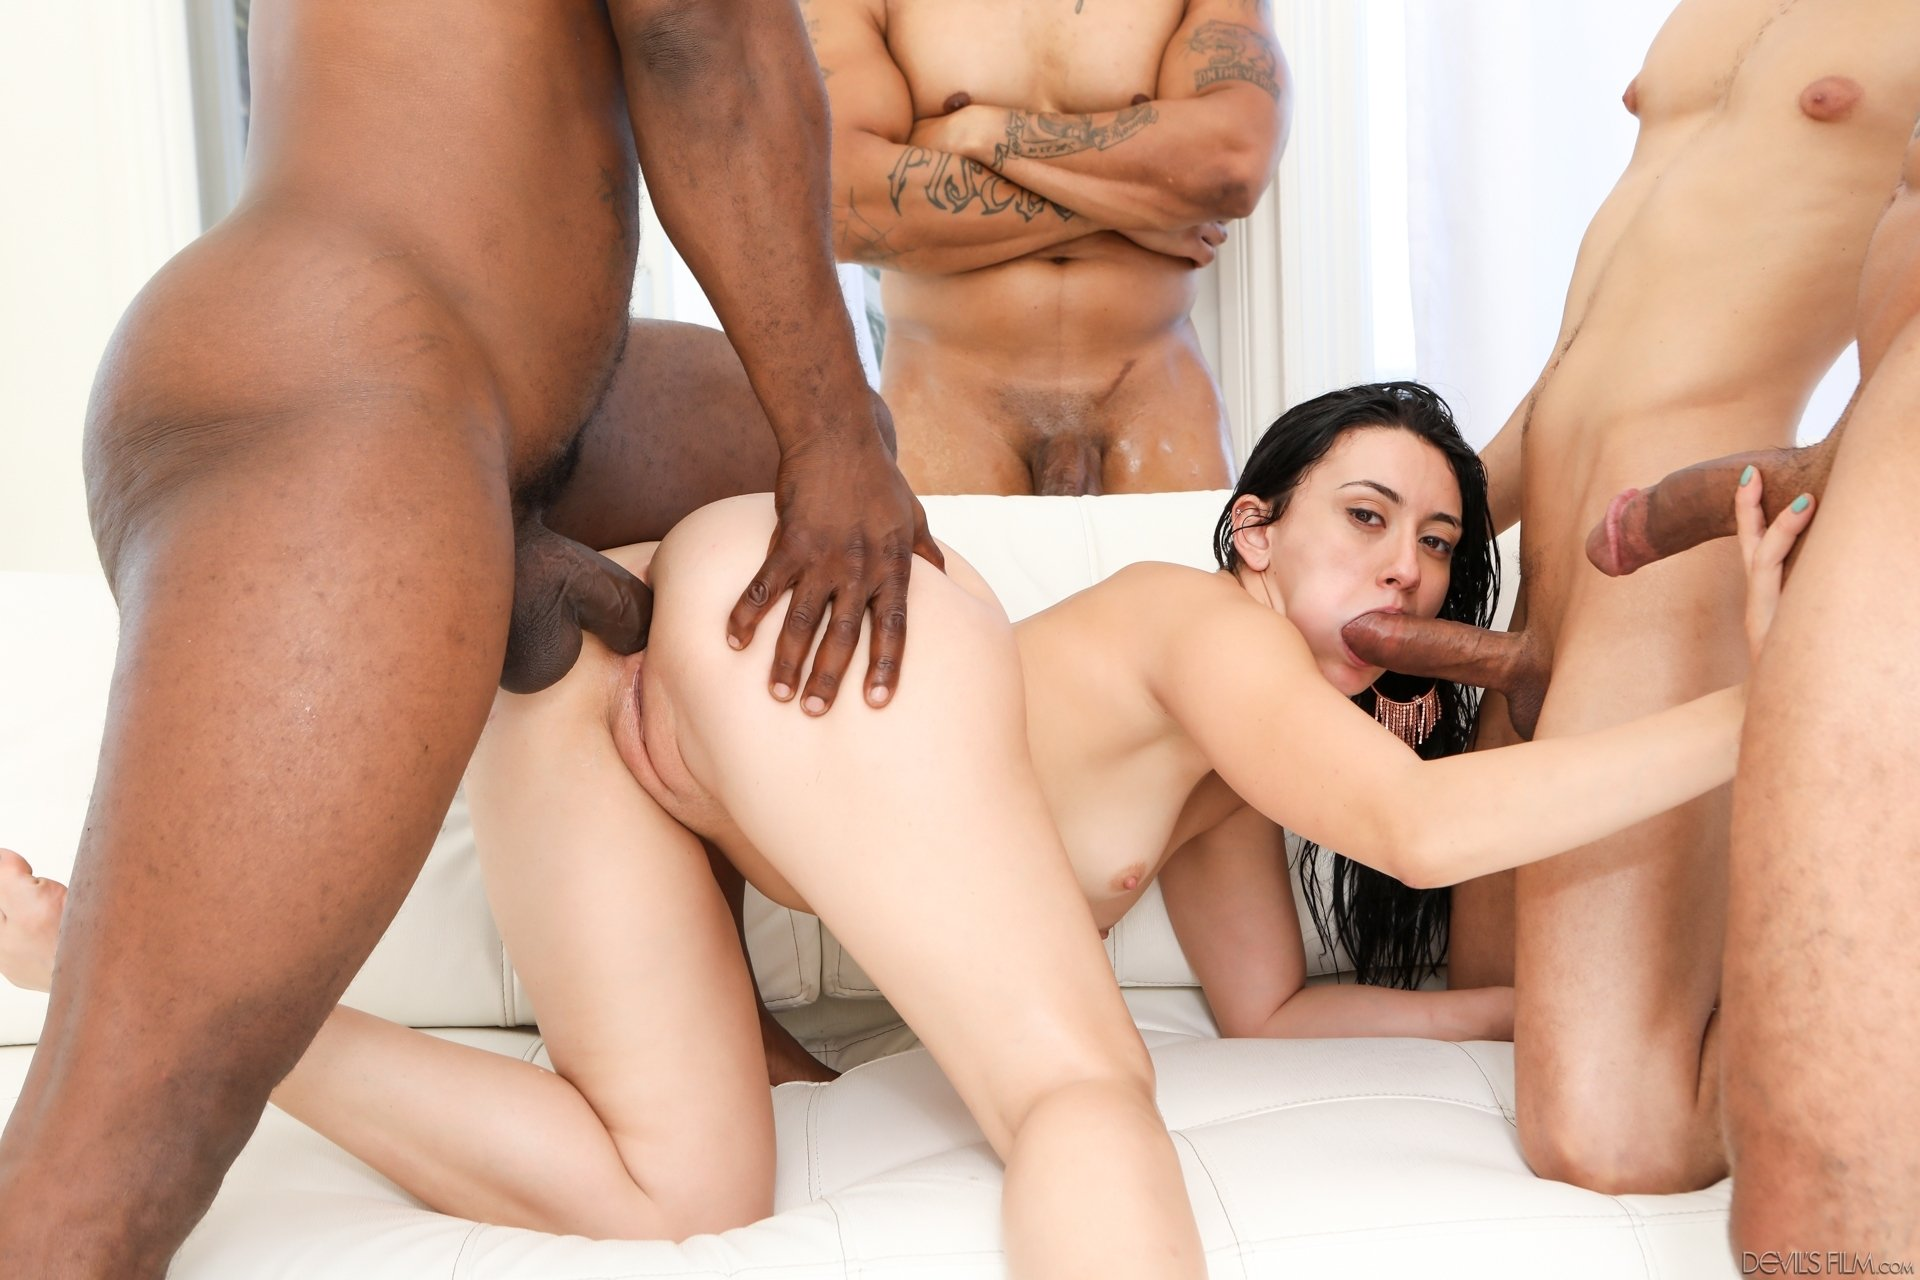 femdom whipping porn there